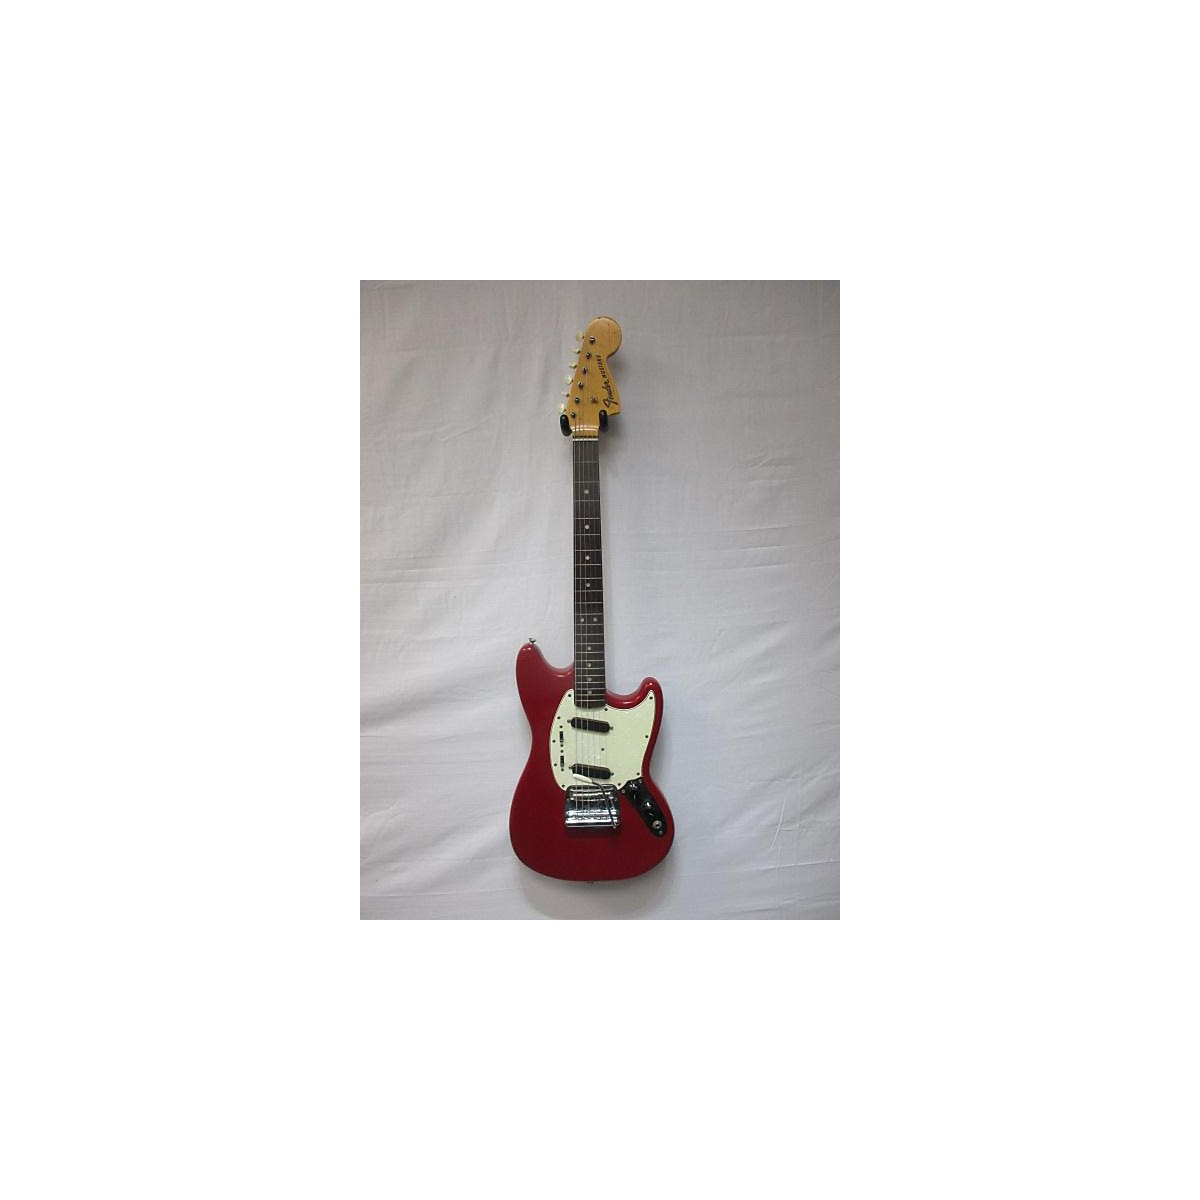 Fender 1968 1968 MUSTANG Solid Body Electric Guitar